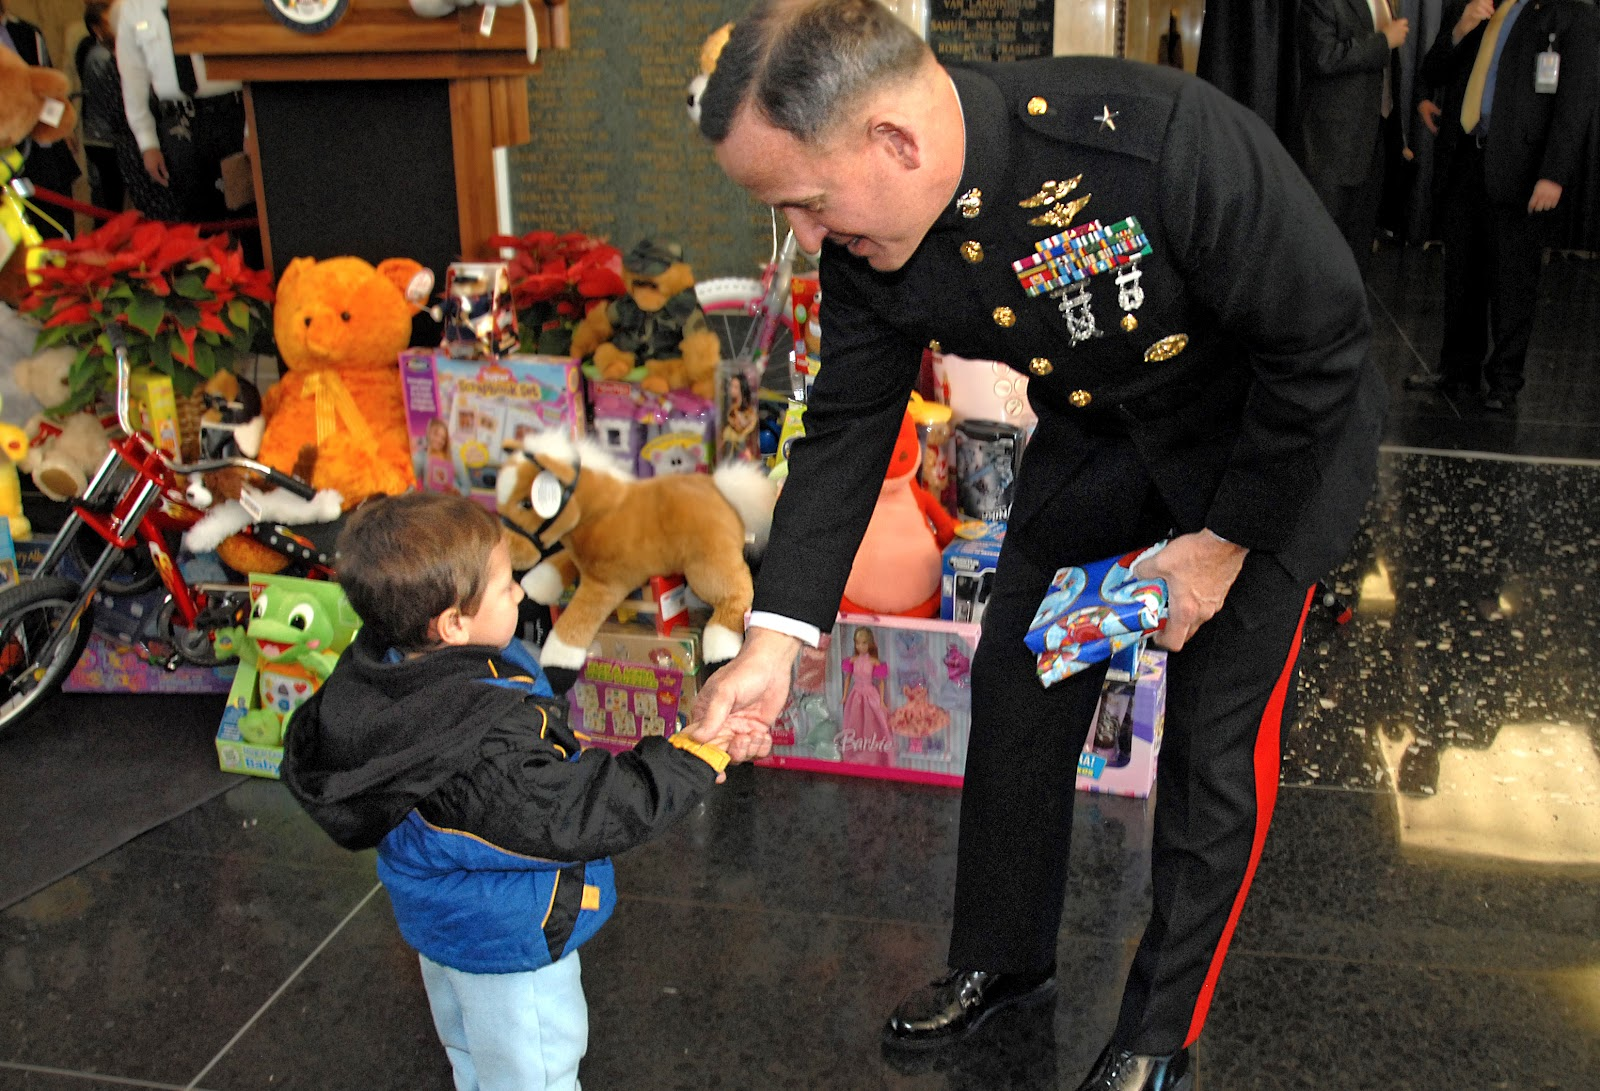 Marines Toys For Tots 2012 : Rantin ravin days of christmas